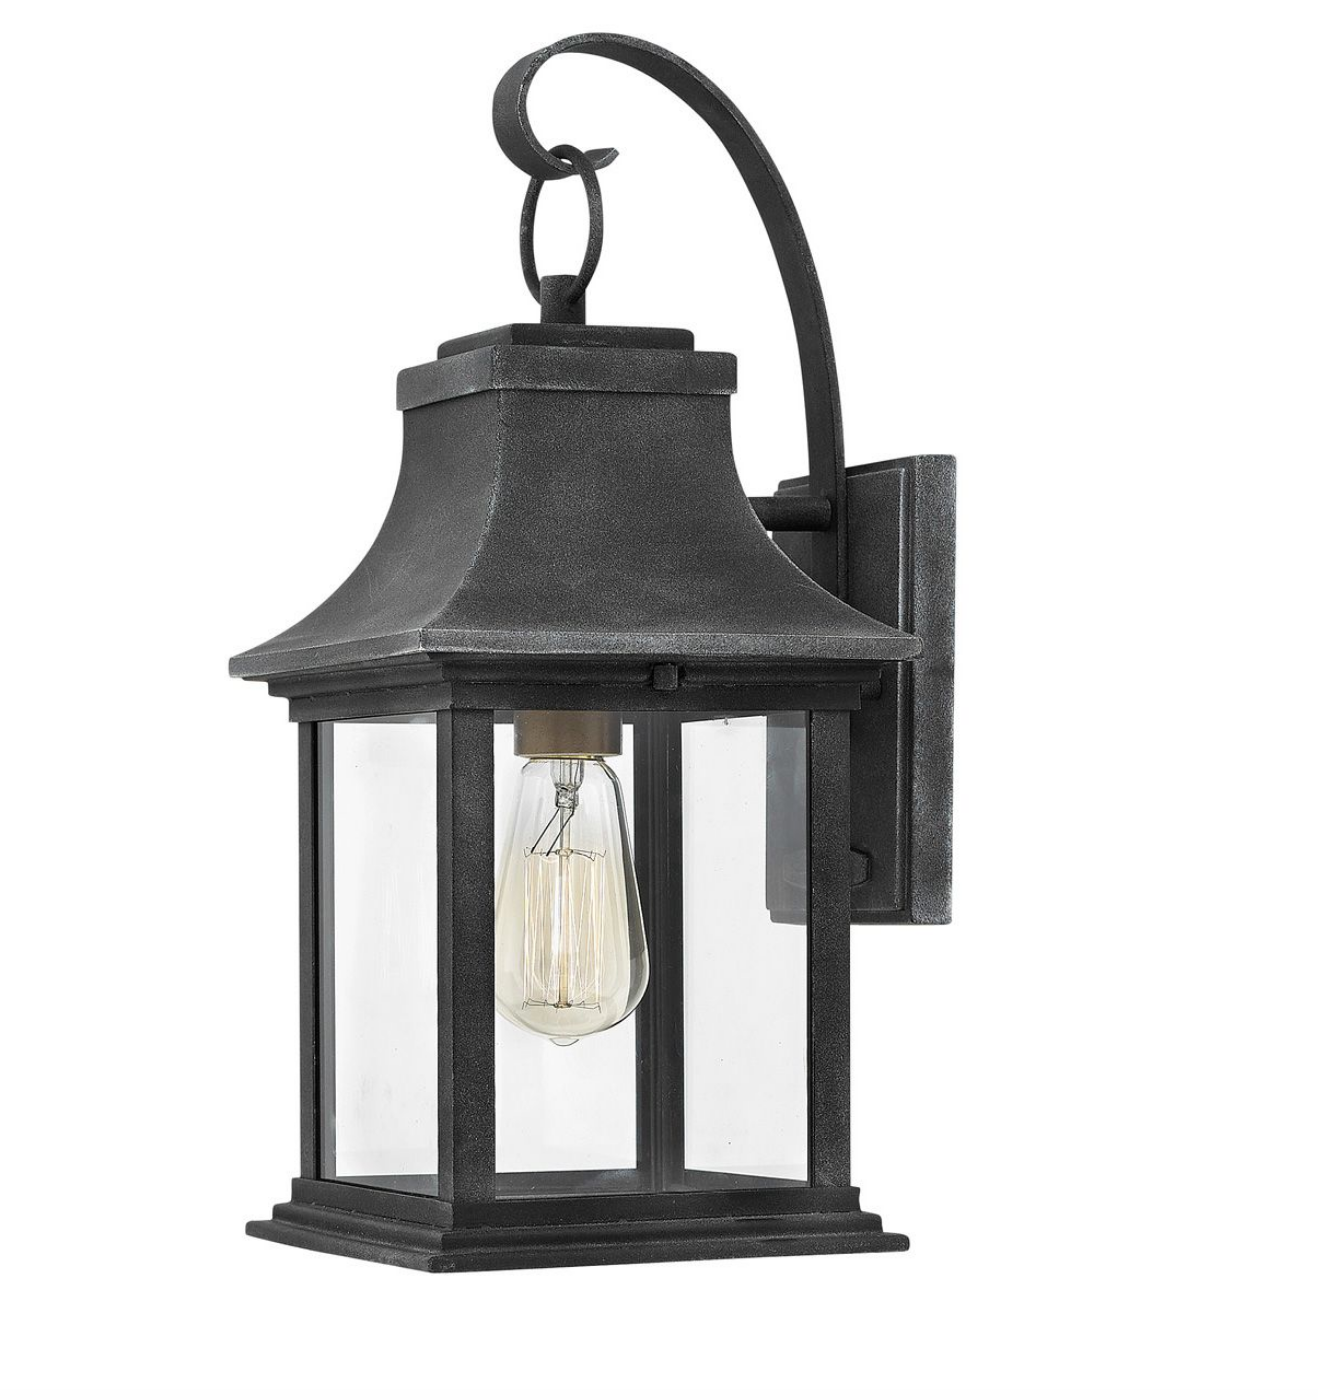 Outdoor Adair Wall Lantern 2930, 2934, 2935